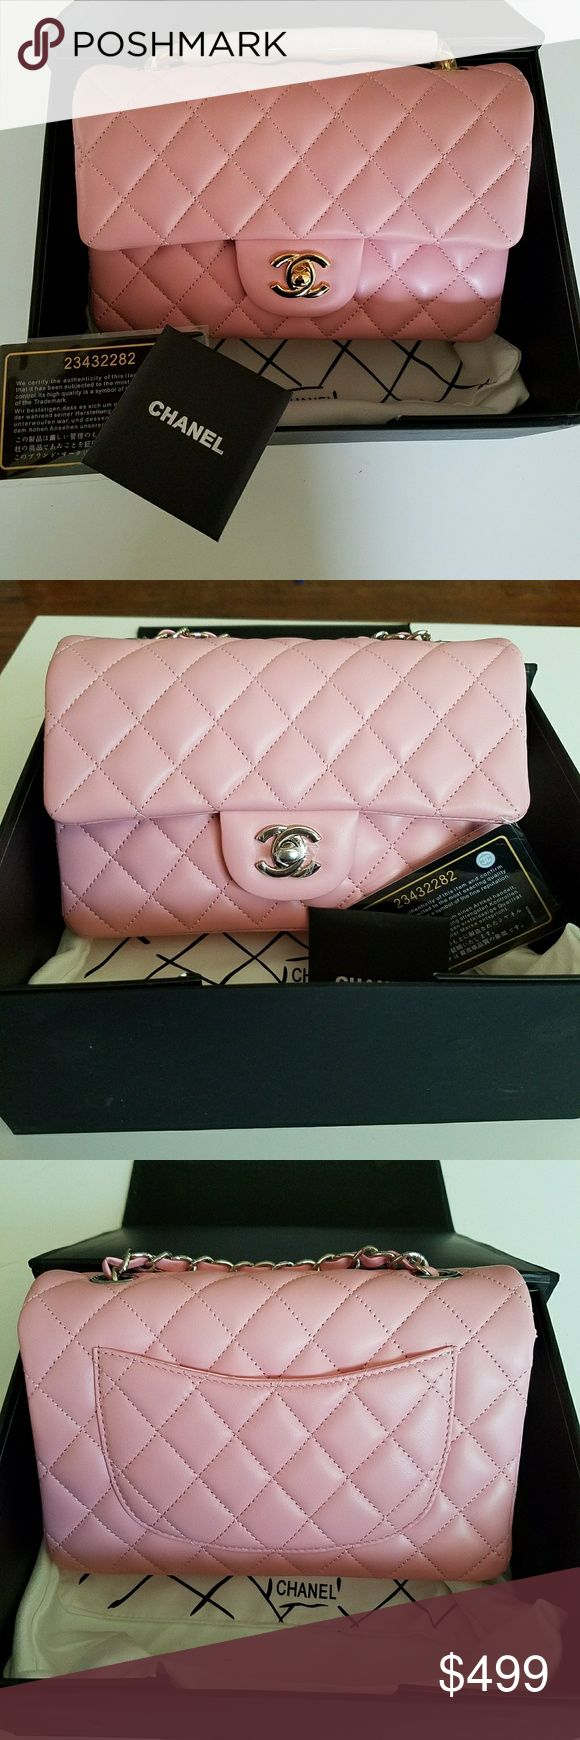 Pink Chanel Mini Flap Bag Buttery soft lambskin. Pink Chanel Mini Flap Crossbody bag. Silver hardware. Comes with Chanel storage box, authenticity card, dust bag, care booklet.  Look great for less! $499 when purchased through here. $450 via PP. Email me a luxystoreluxy@gmail.com if wanting PP price. Price is firm. Was not cheap to purchase. Outstanding quality! CHANEL Bags